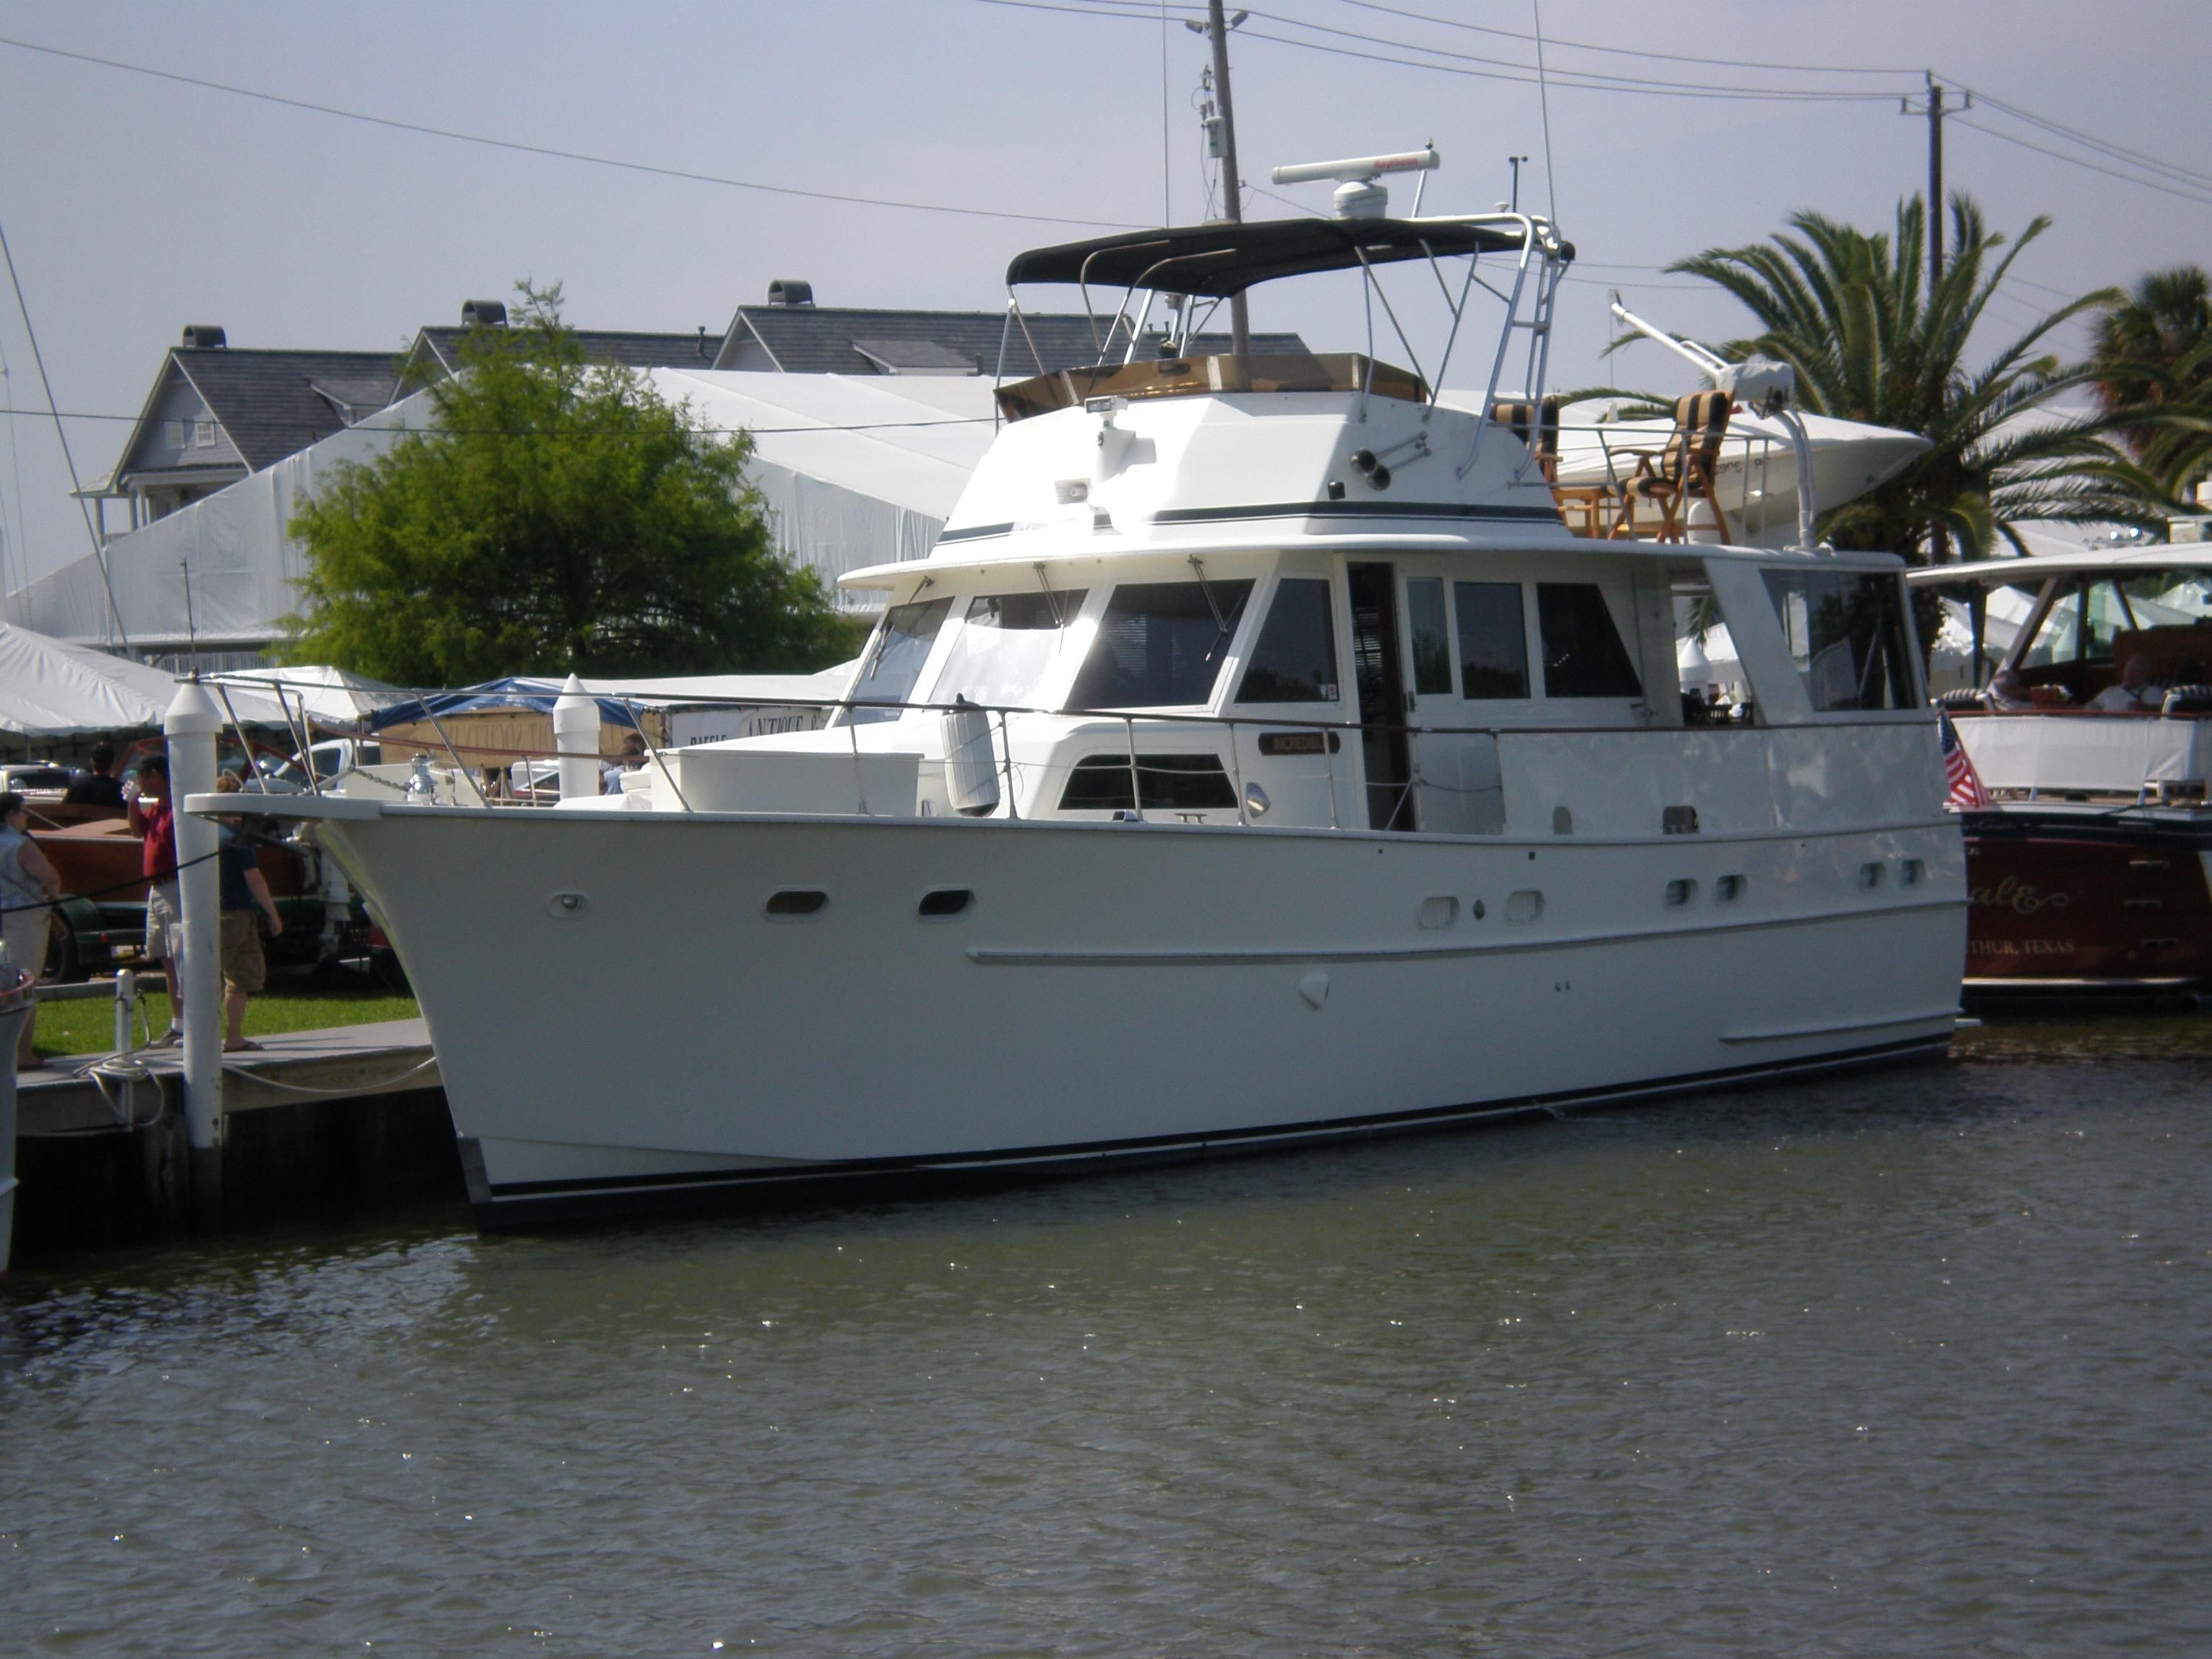 1965 hatteras motor yacht power boat for sale www On hatteras motor yacht for sale